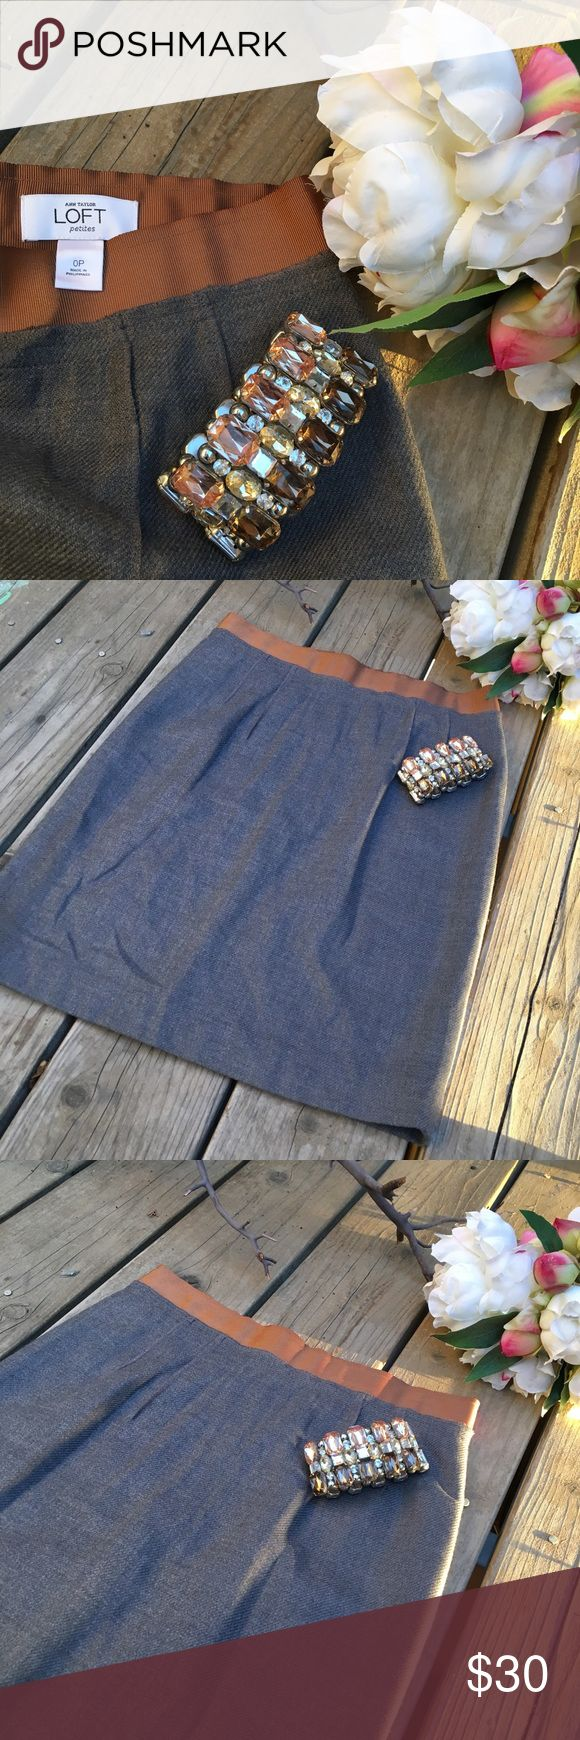 Beautiful Ann Taylor Loft Career Skirt🌸 🍂Beautiful Ann Taylor Loft Career Skirt, is gray in color and has a brown trim around the waistline and zipper. It's pleated from the front/back and has a lining underneath. Can be paired with anything! Perfect condition. New without Tags. Comes from a smoke-free home:)🍂🌸🍂 Ann Taylor Loft Skirts Midi